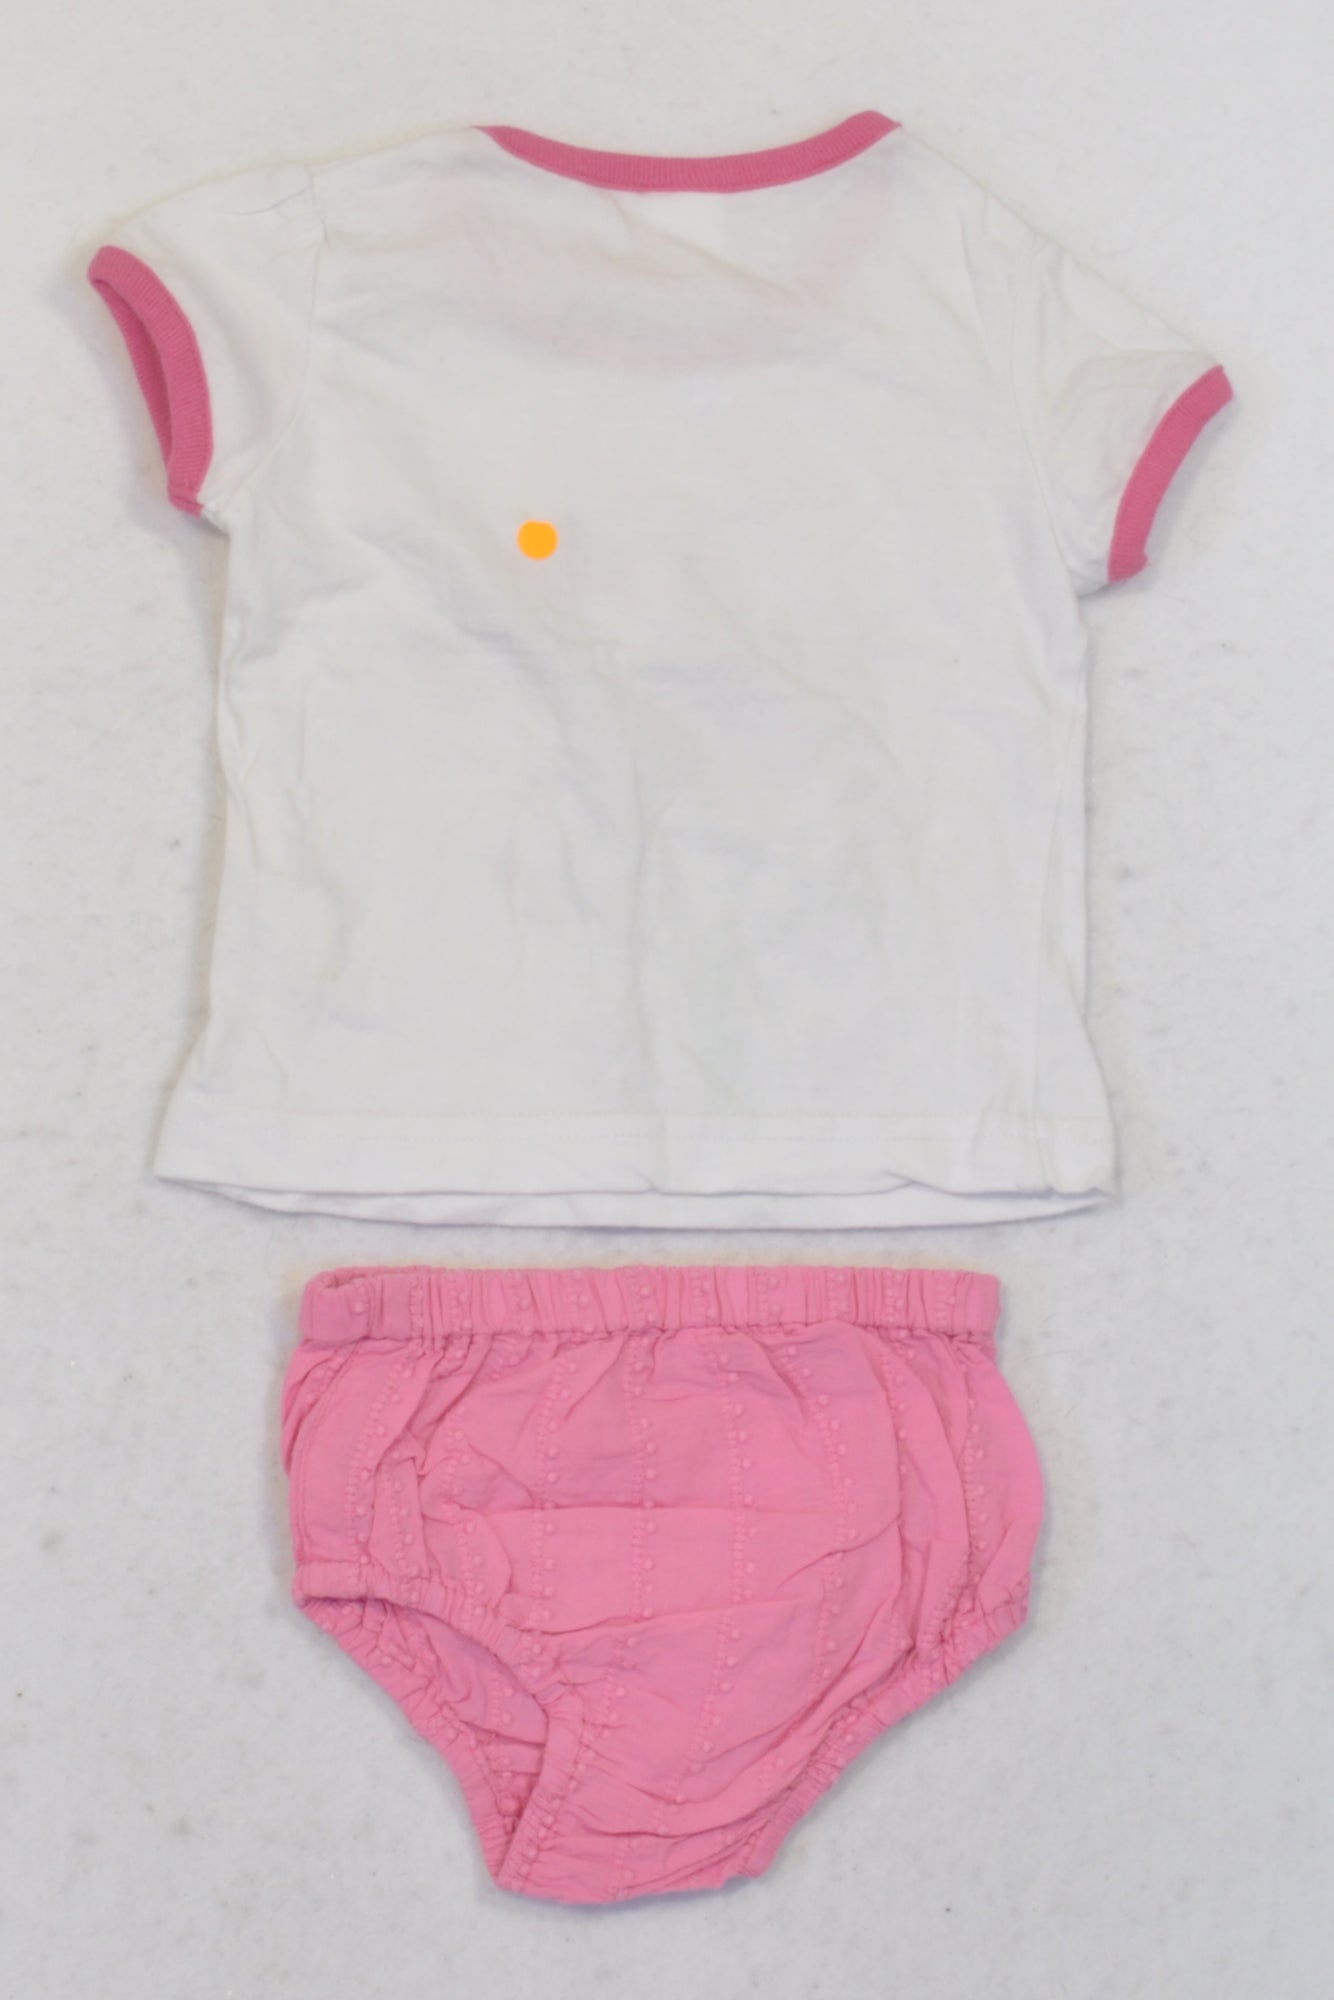 White Tweety Bird T-Shirt & Bloomers Outfit Girls 3-6 months